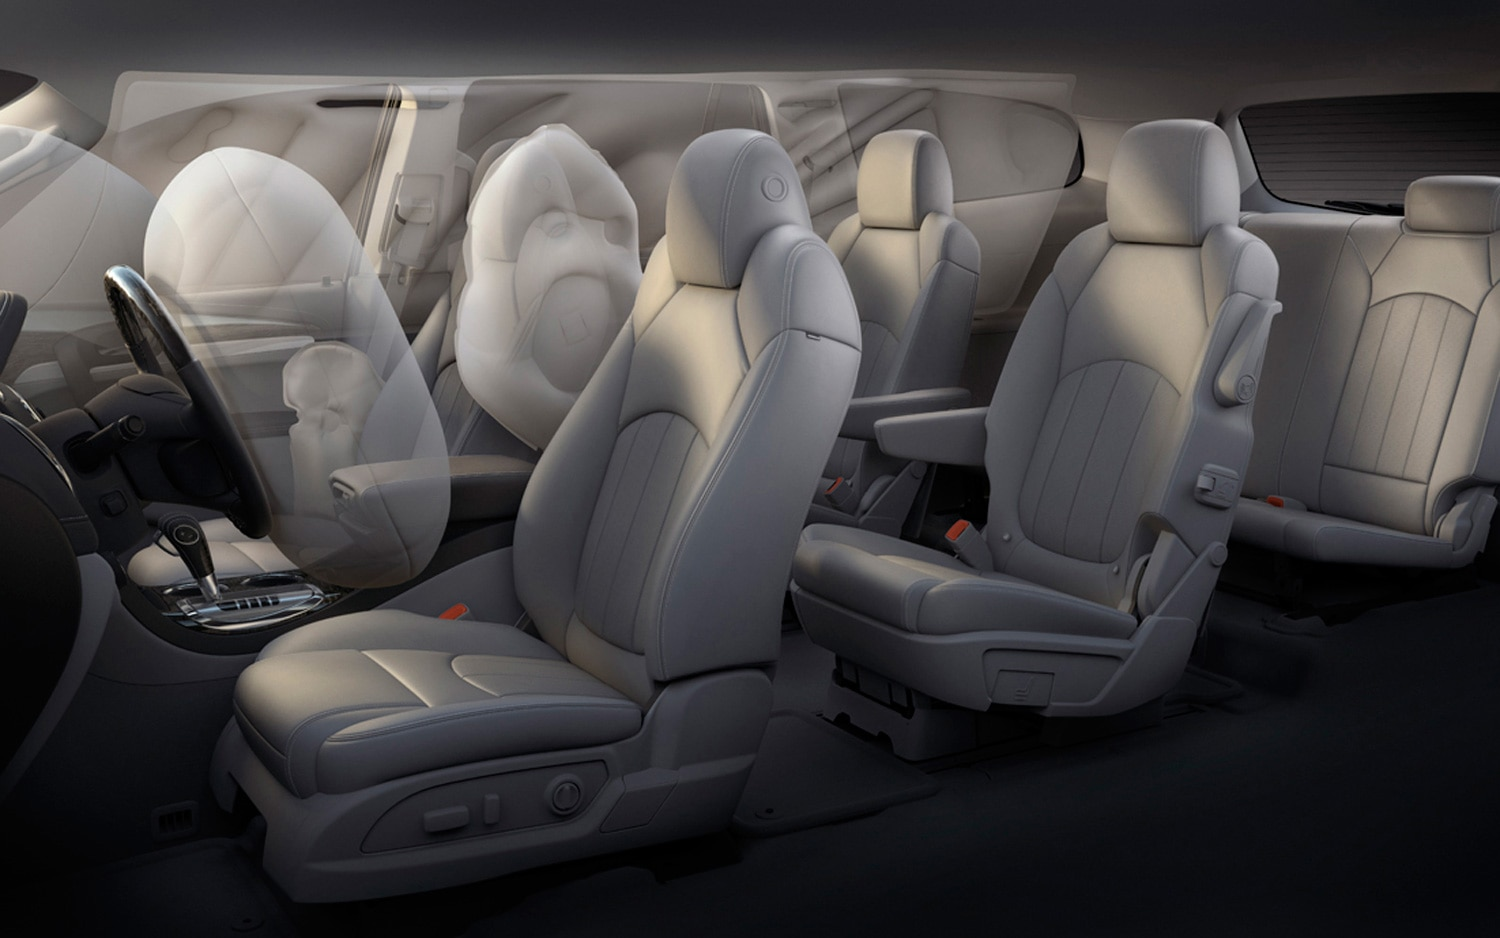 2013 Buick Enclave Interior Air Bags